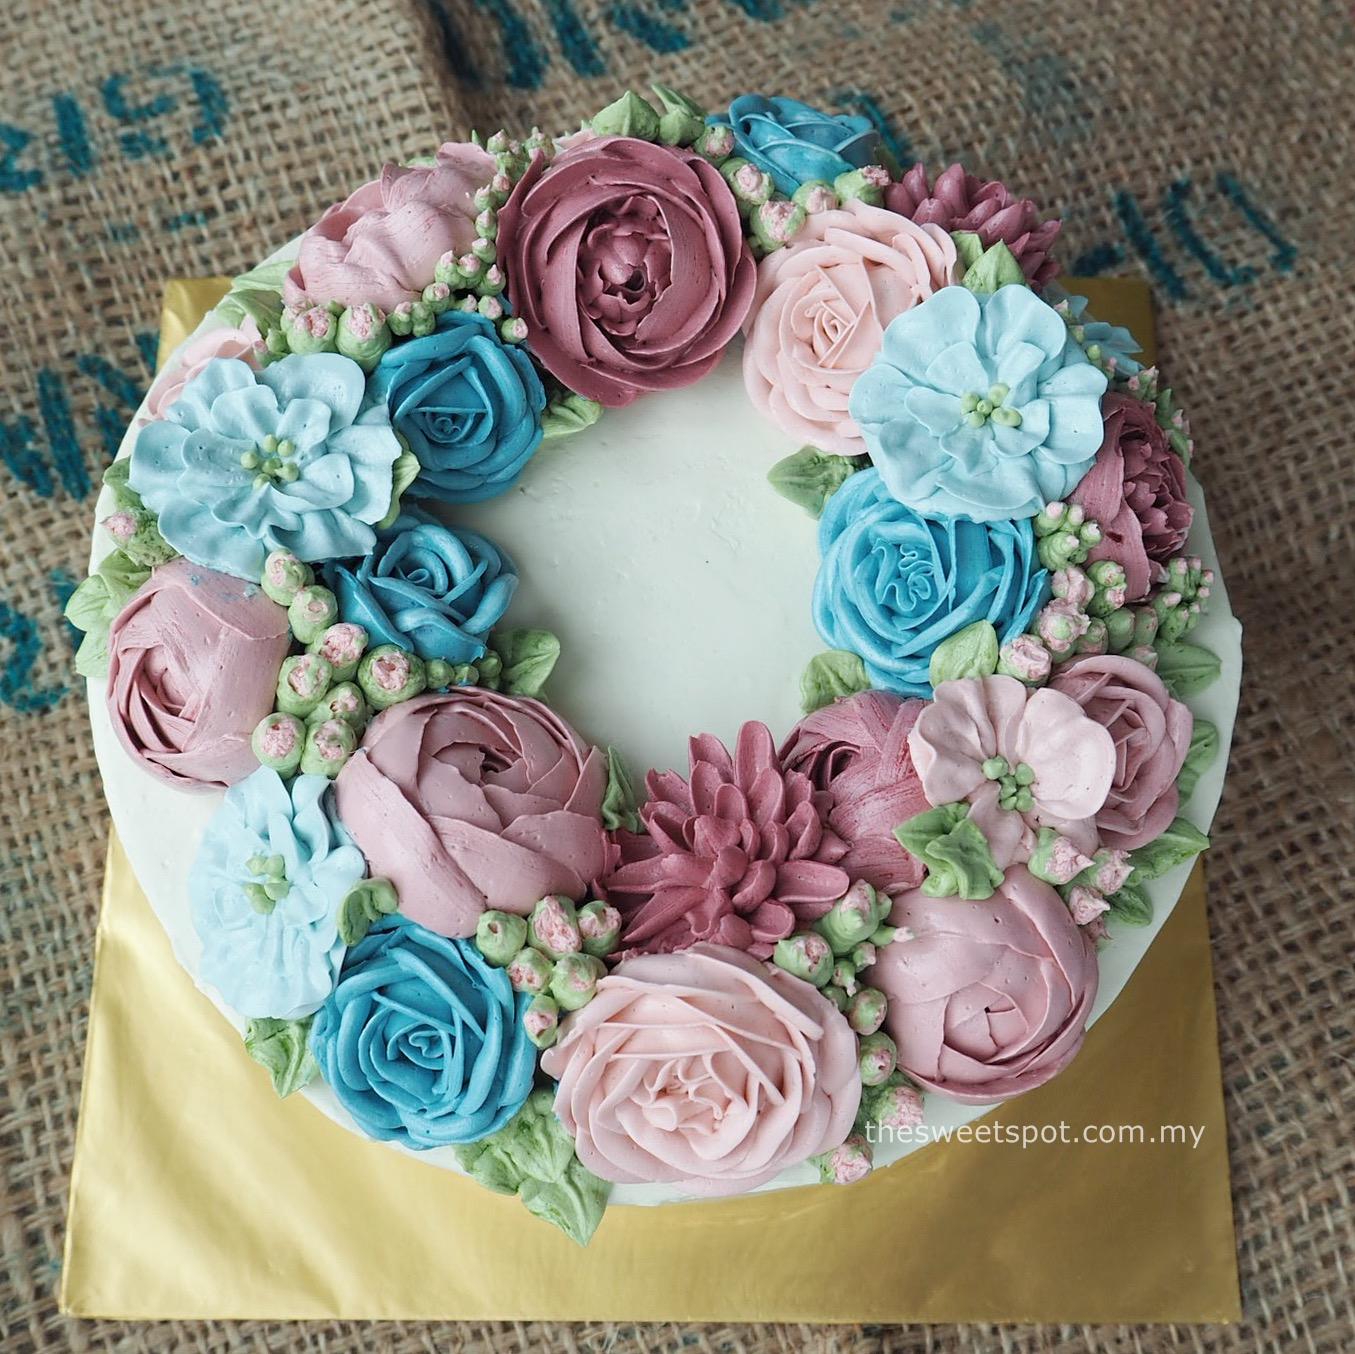 8 inches cake with blue and pink flower